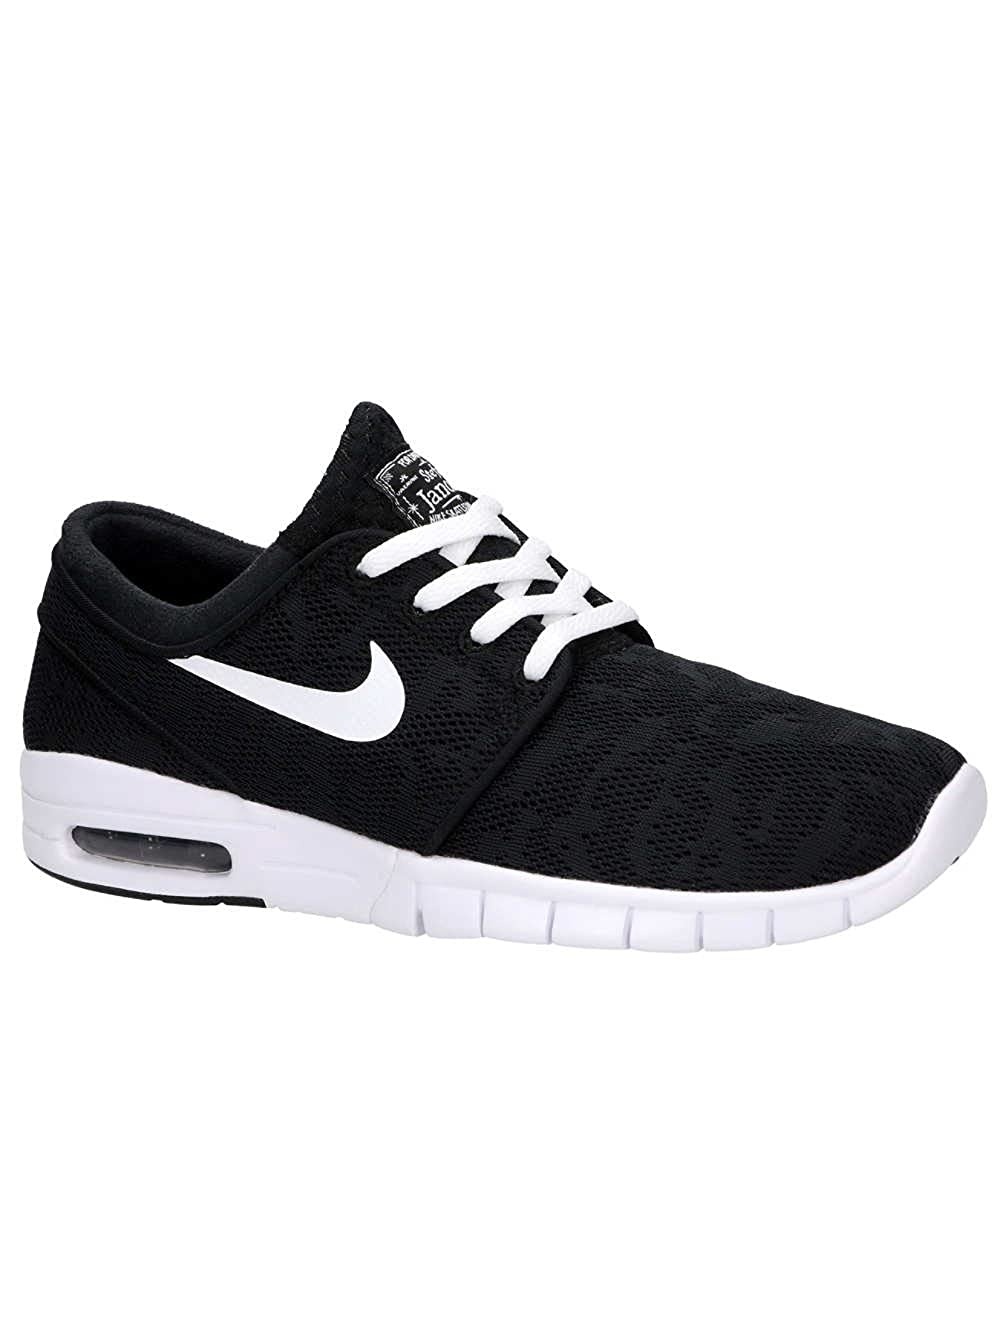 the best attitude 8ac76 455f3 Amazon.com   Nike Men s Stefan Janoski Max Black White Sneakers - 6.5 D(M)  US   Fashion Sneakers